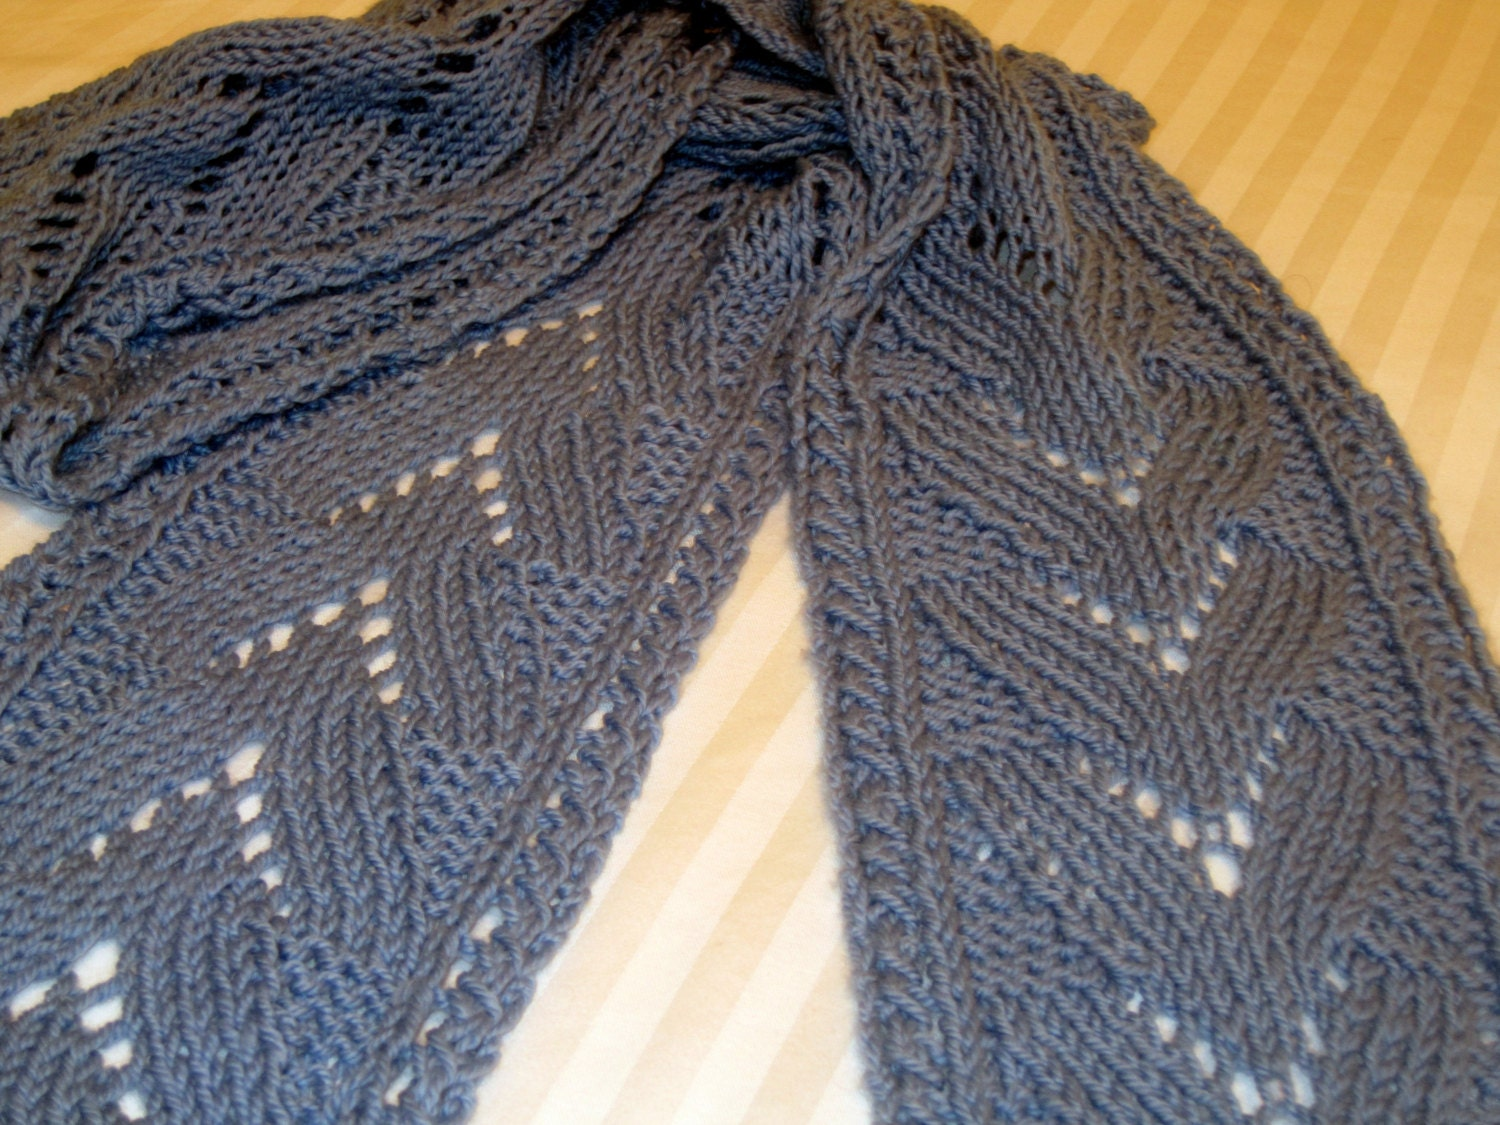 Ripple Stitch Knitting Pattern Scarf : PDF Knitting Pattern for Lace Ripple and Wave Scarf